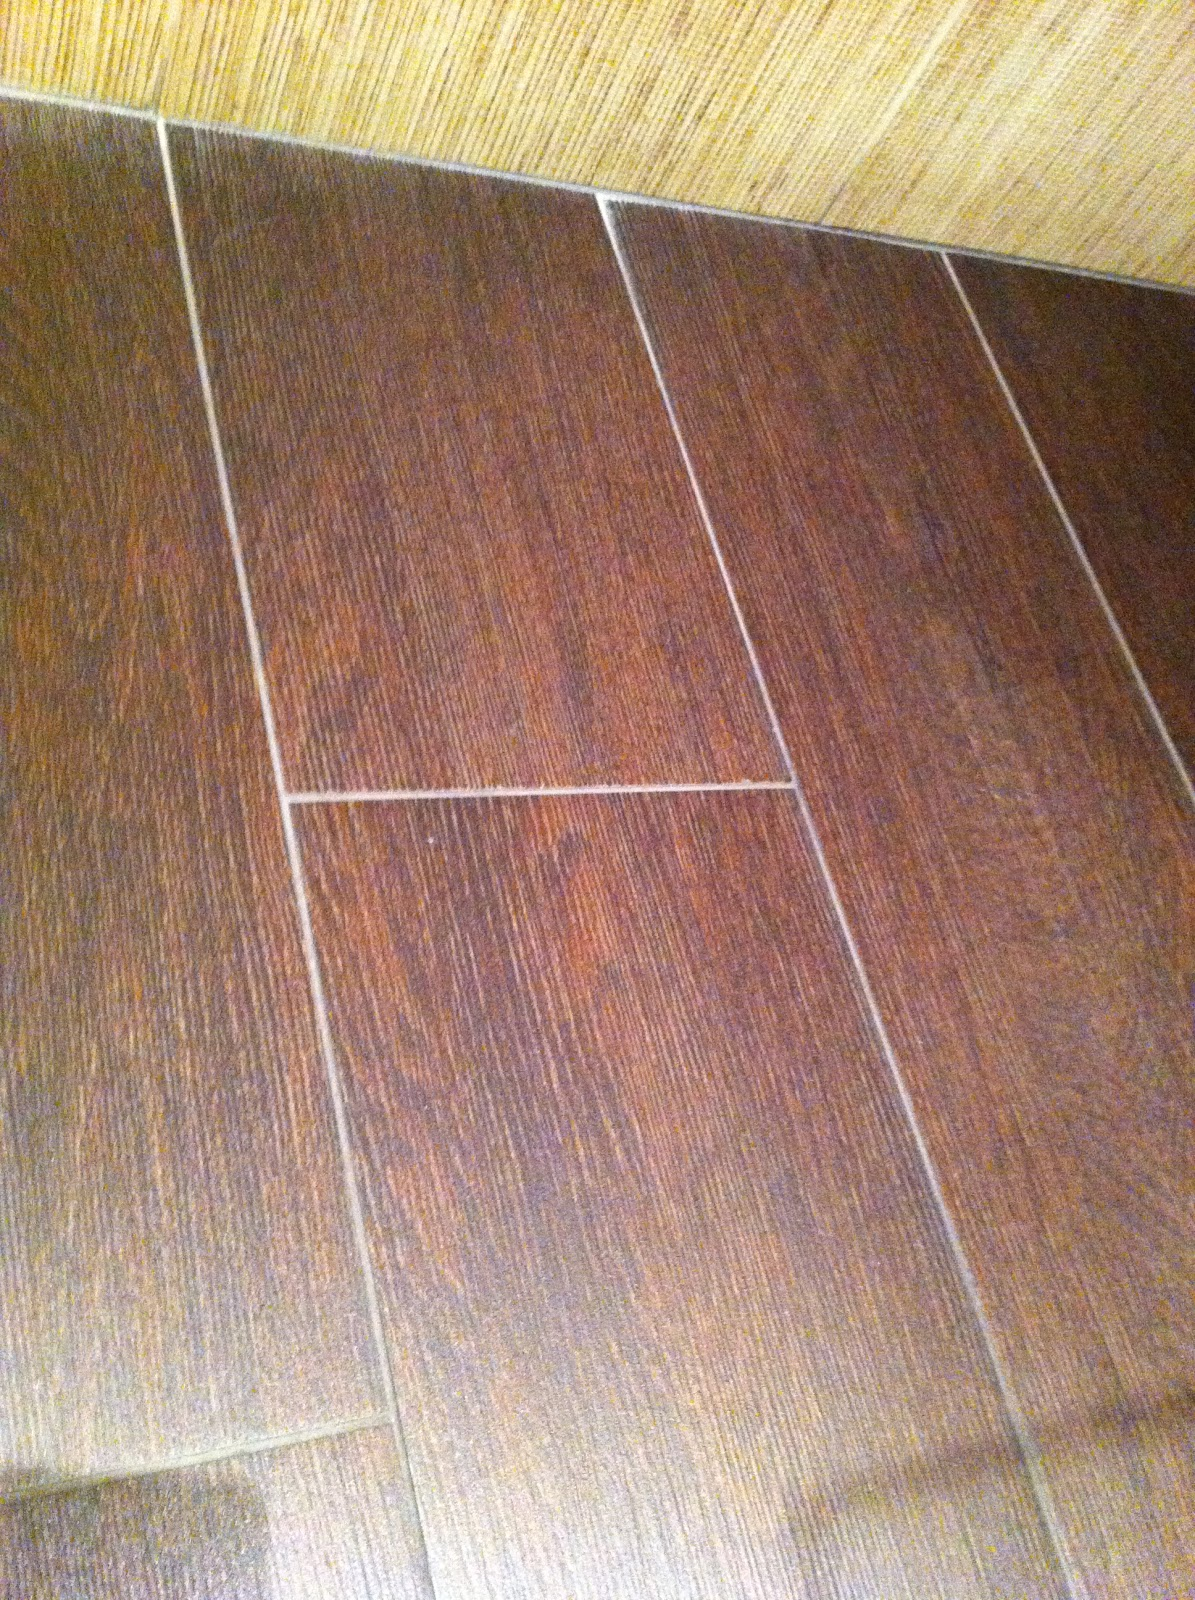 To da loos bamboo tiles and fake wood floor porcelaine for Simulated wood flooring